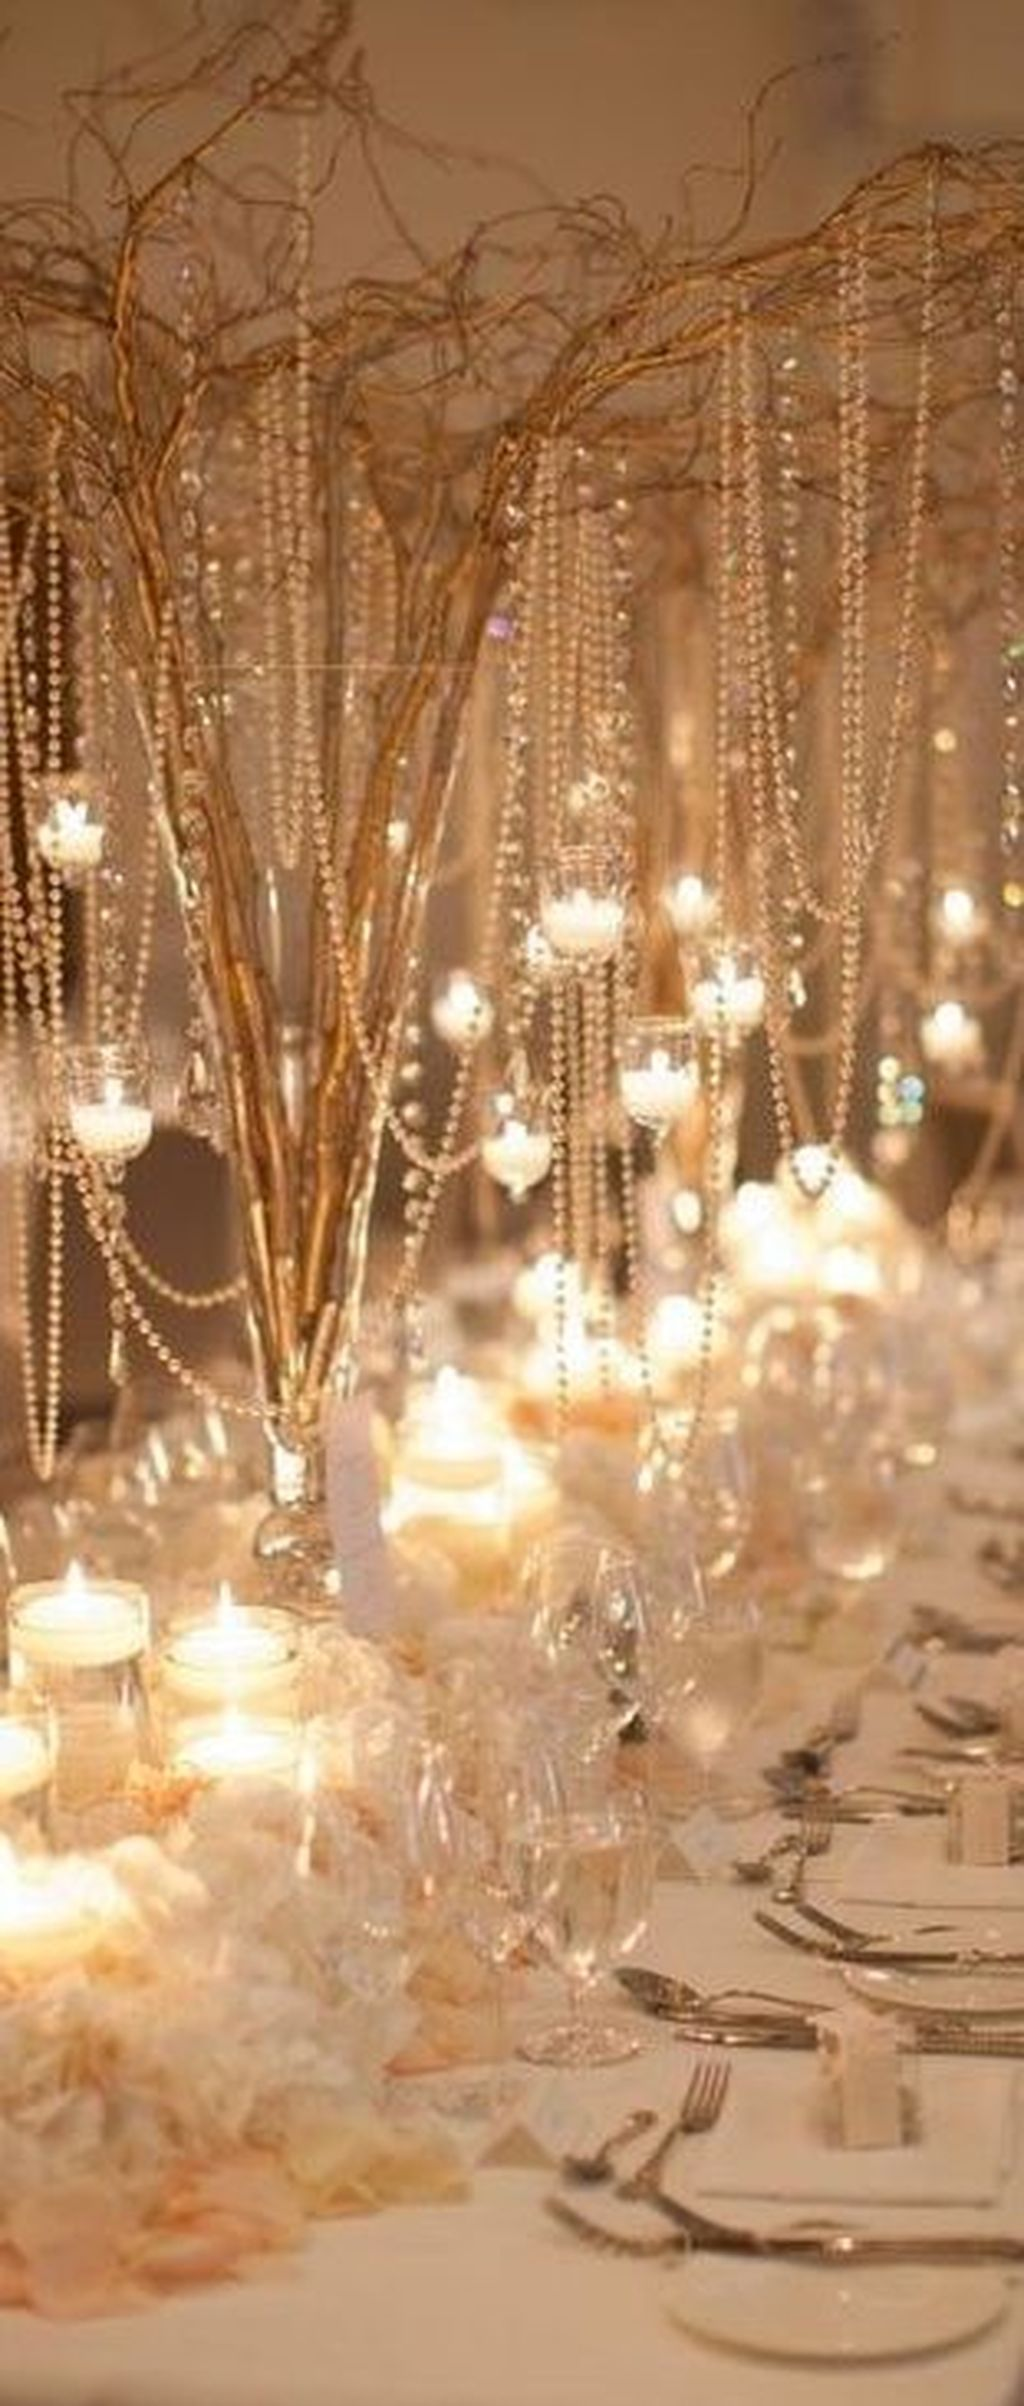 Diy wedding table decorations ideas   Best Adorable Winter Wedding Table Decoration Ideas  Wedding